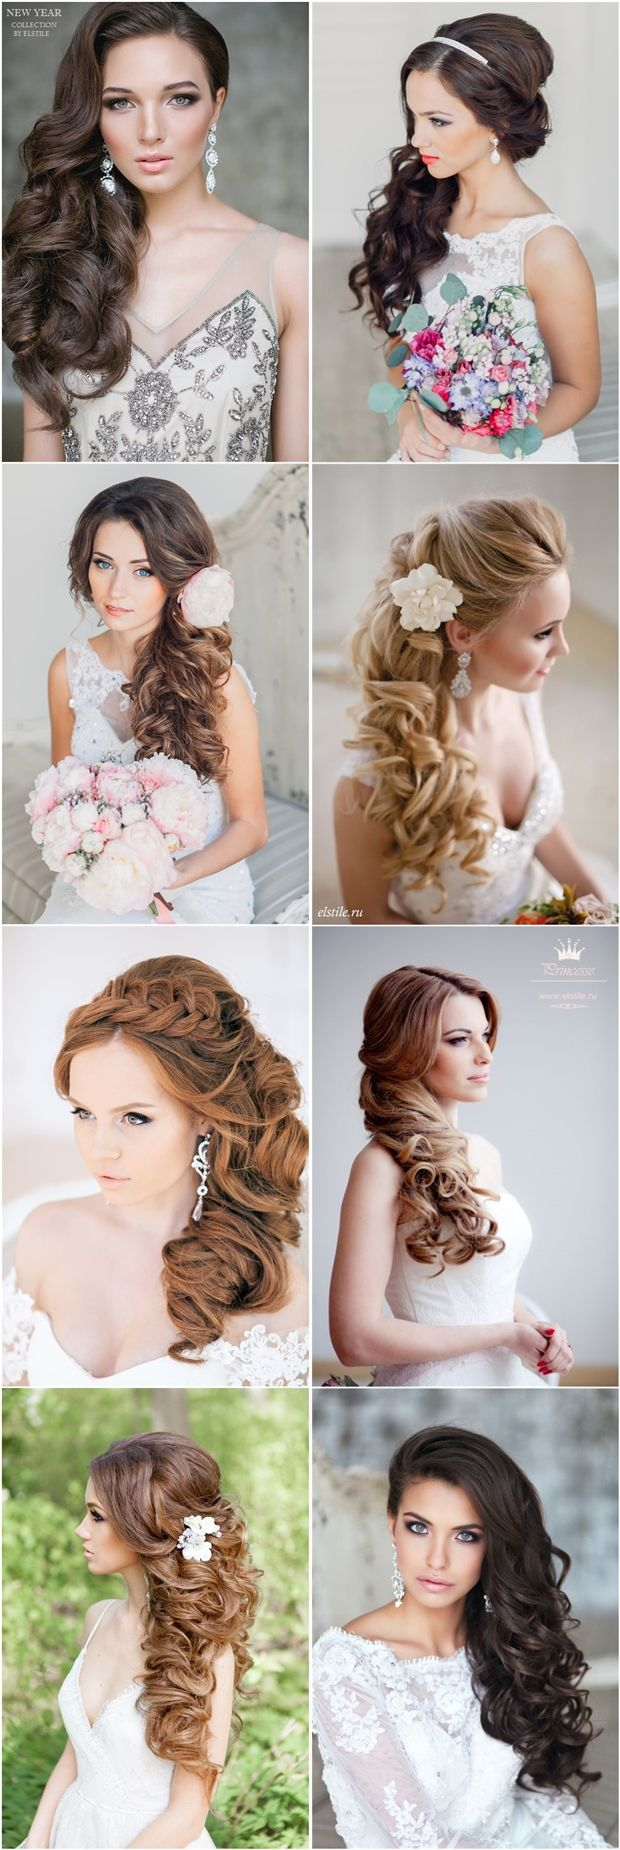 Half-up Half-down long bridal hairstyles for wedding pictures | Deer Pearl Flowers